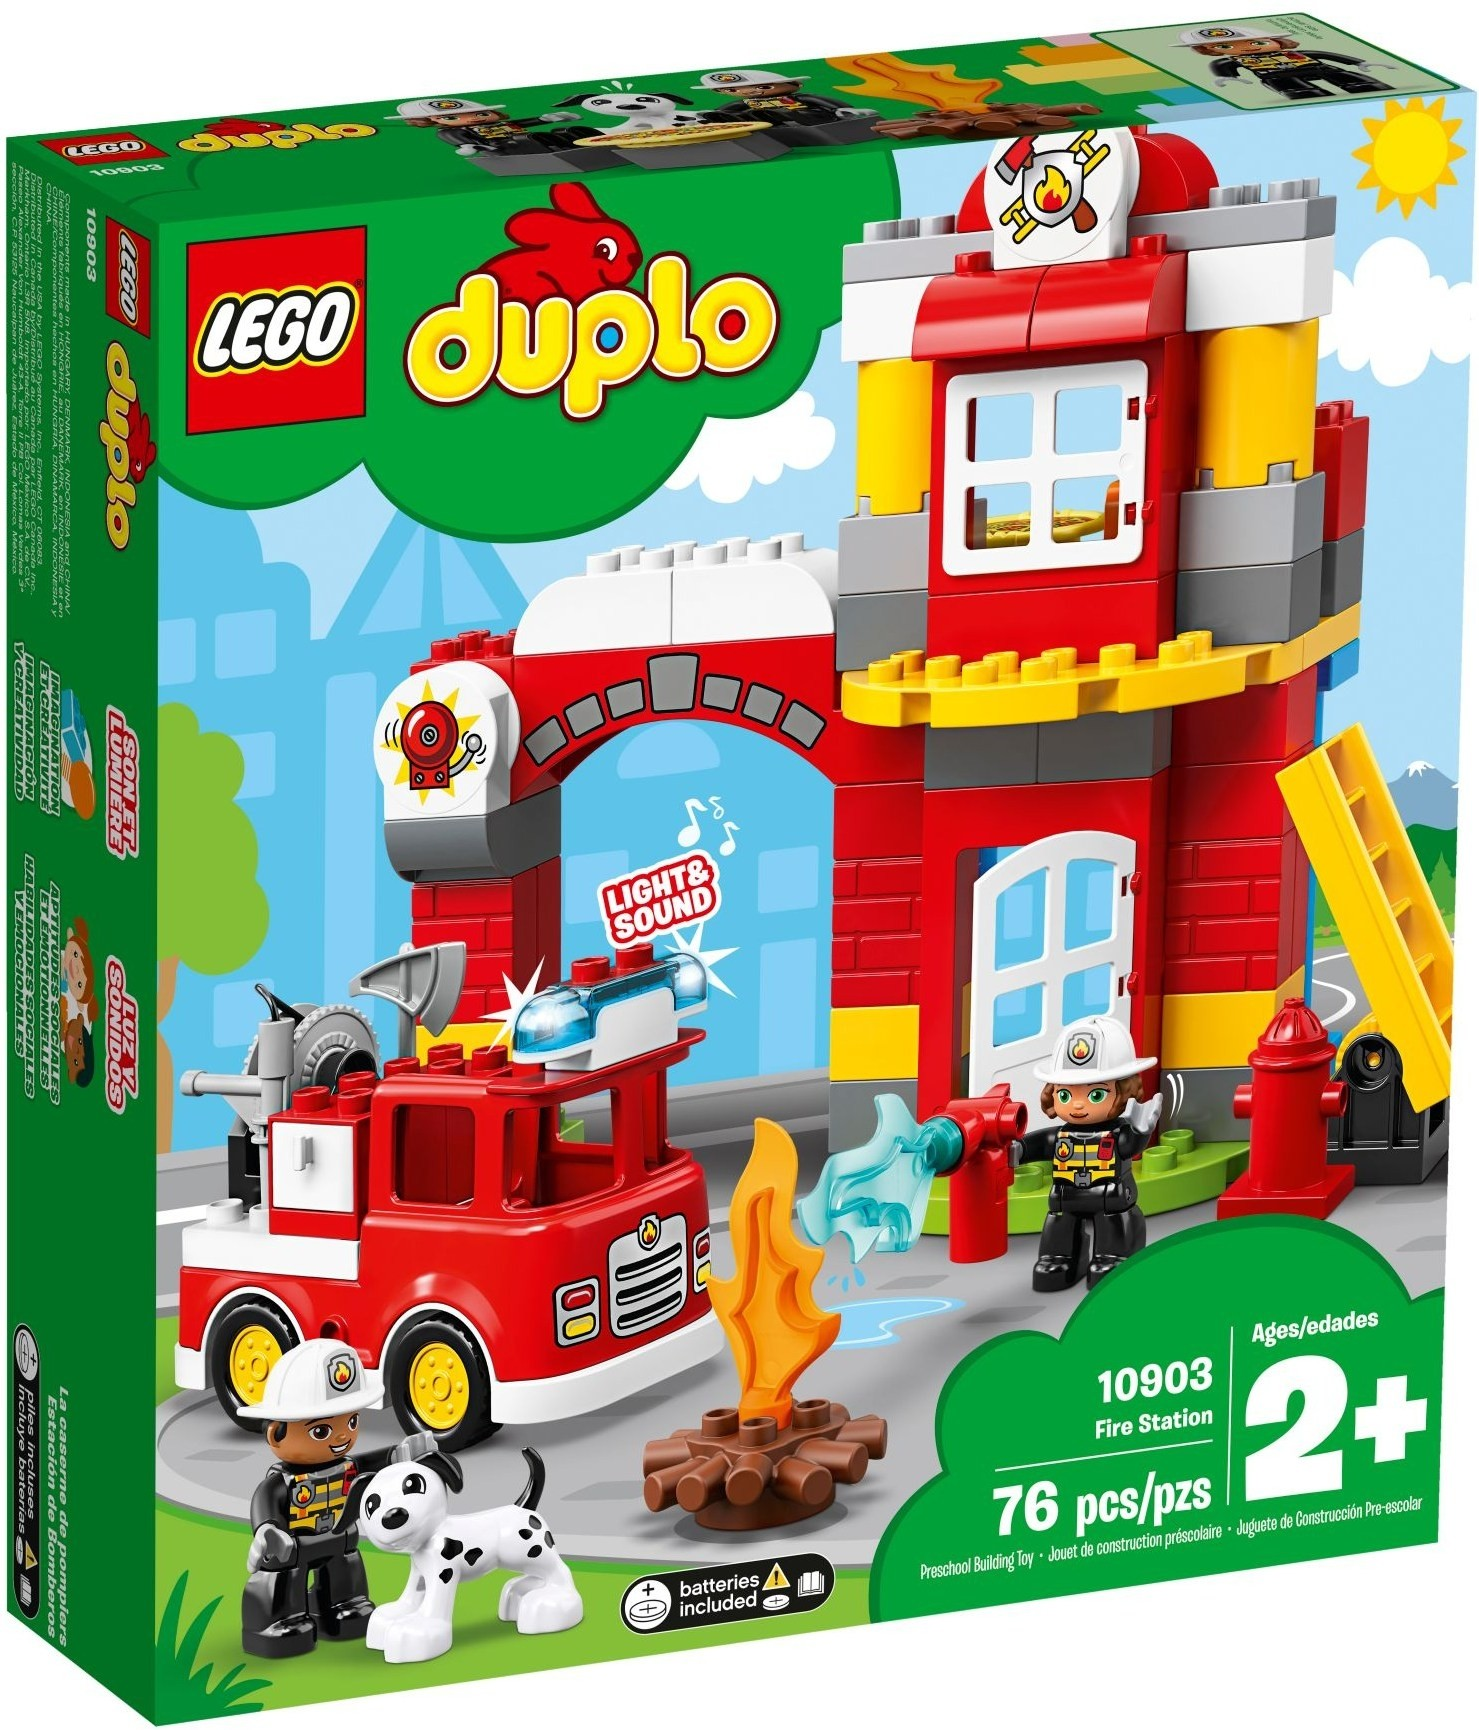 Lego Duplo Fire Station